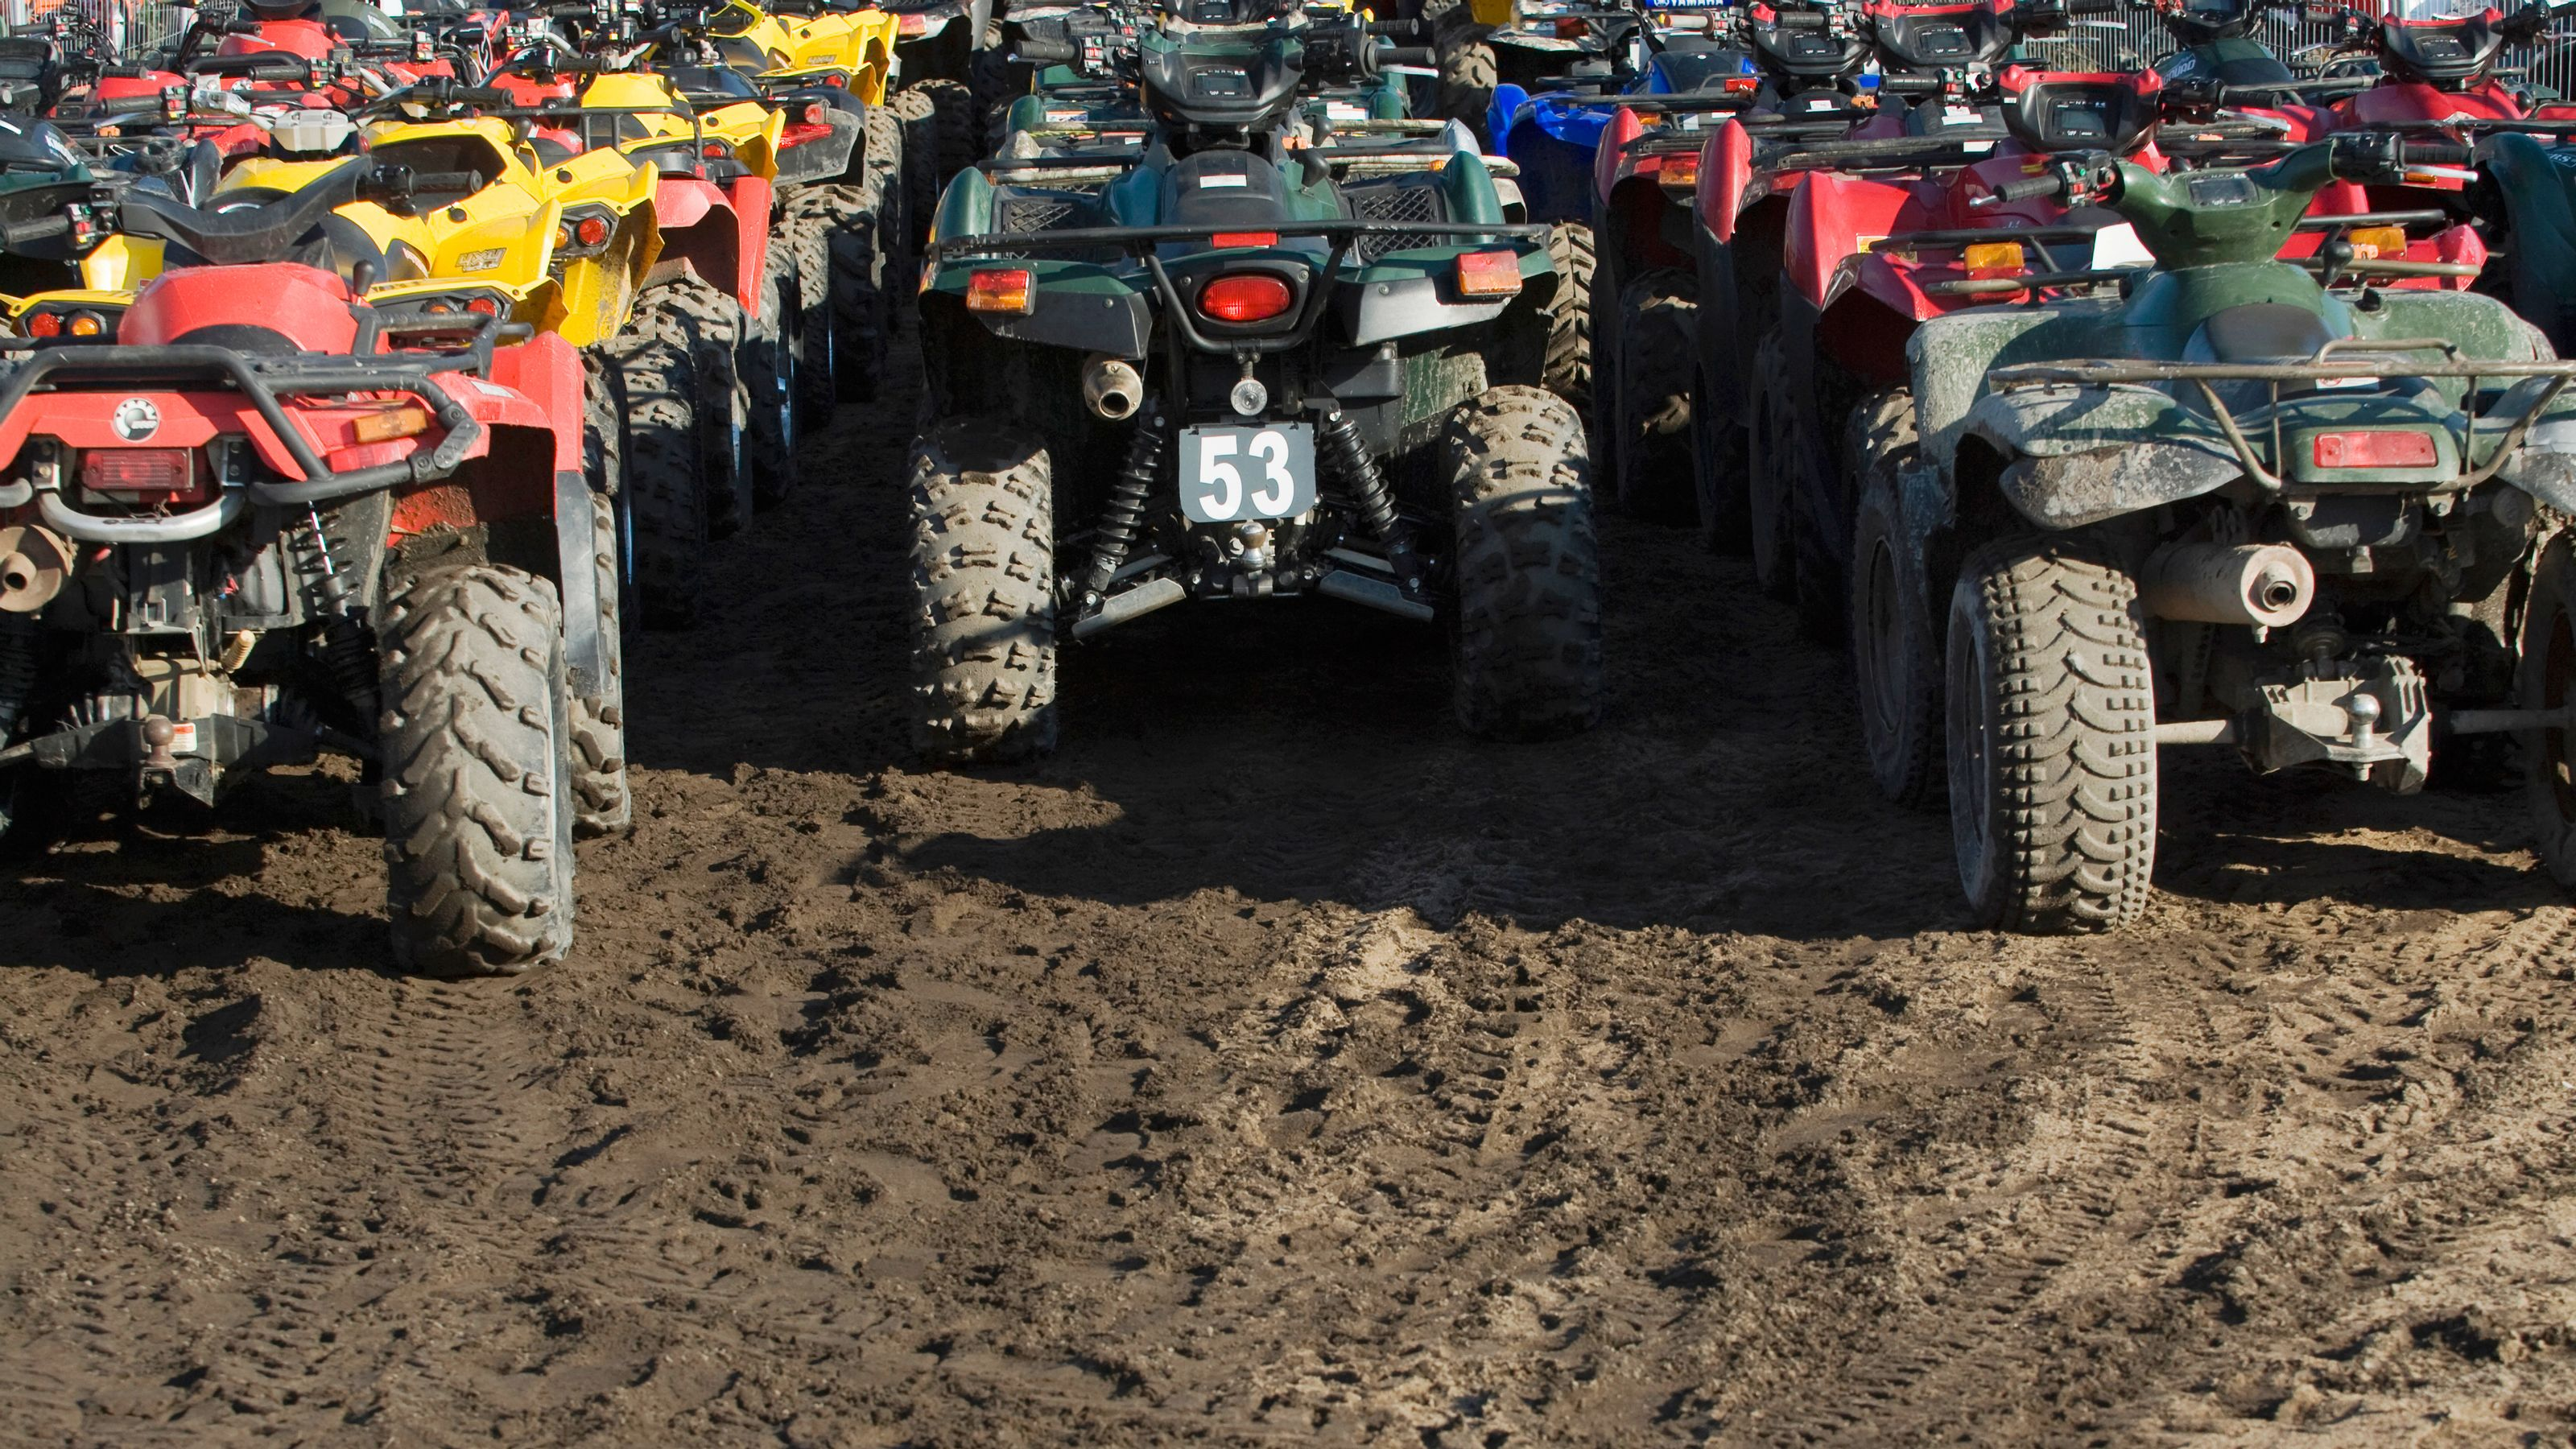 Dune buggies parked on the sand awaiting their riders in Agadir